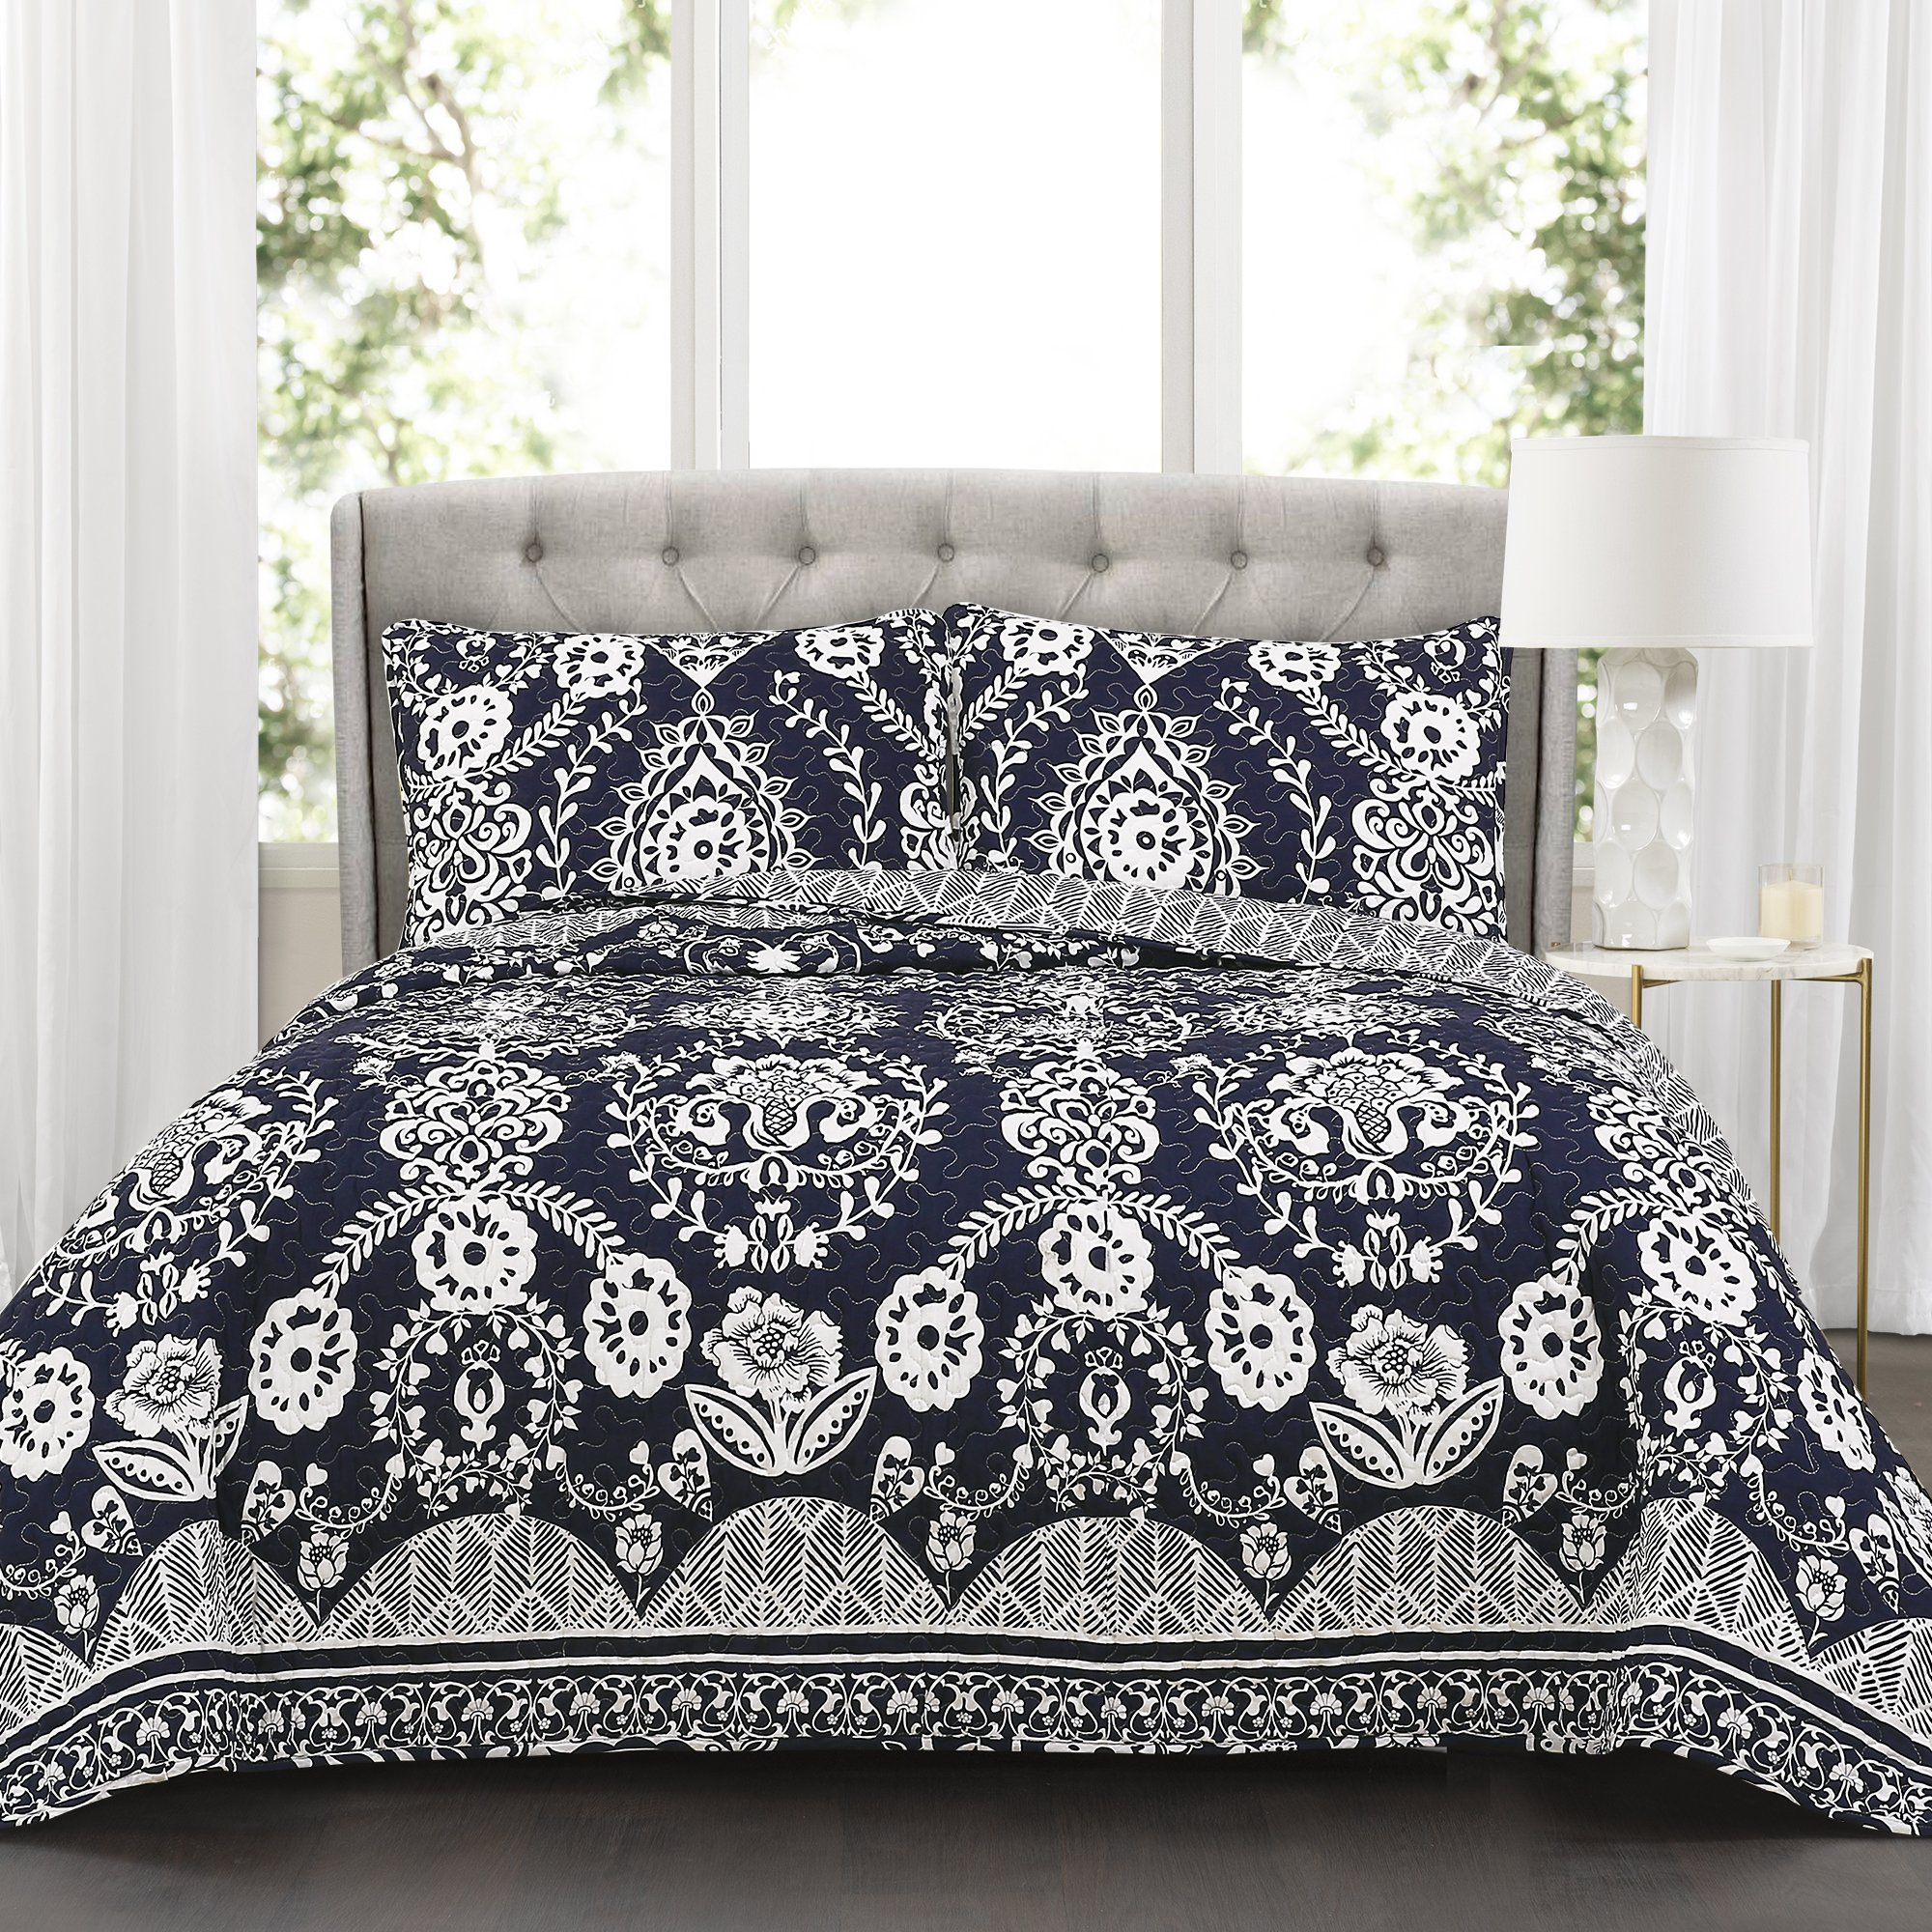 Lush Decor Rosetta Floral 3 Piece Quilt Set, King, Navy